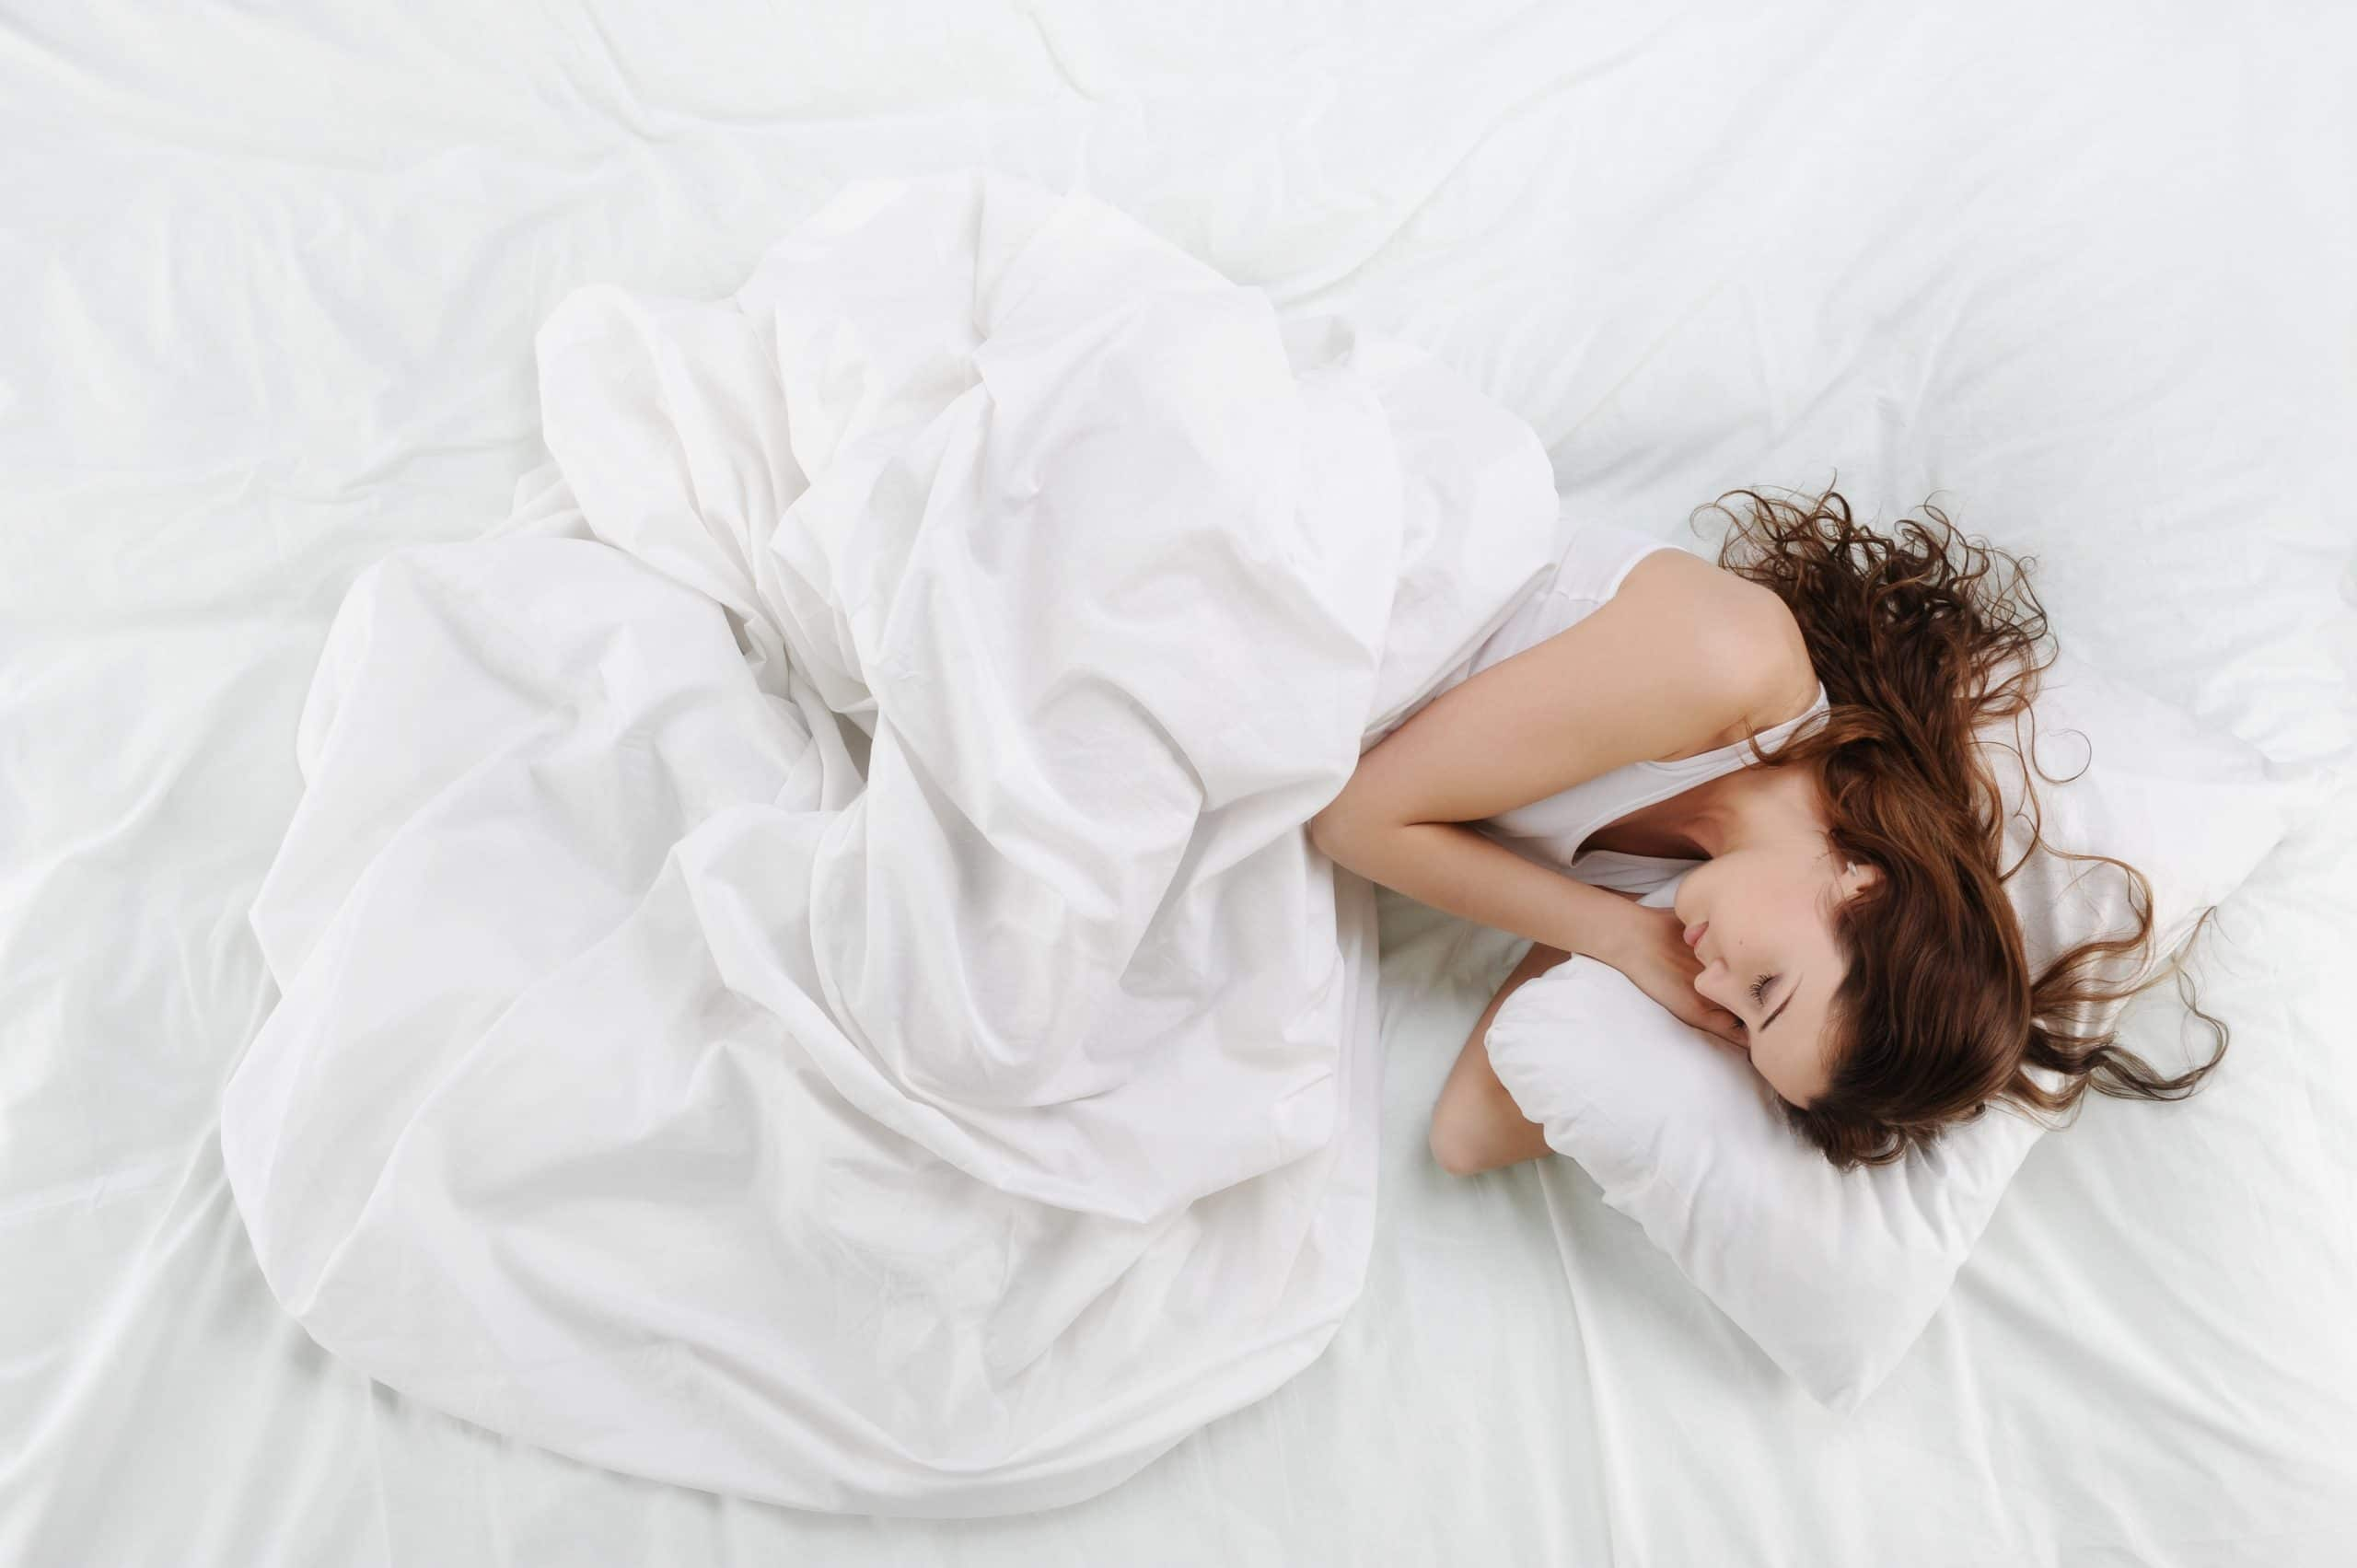 What's Sleep Got to do With It? 3 Mental Health Benefits of Sleep